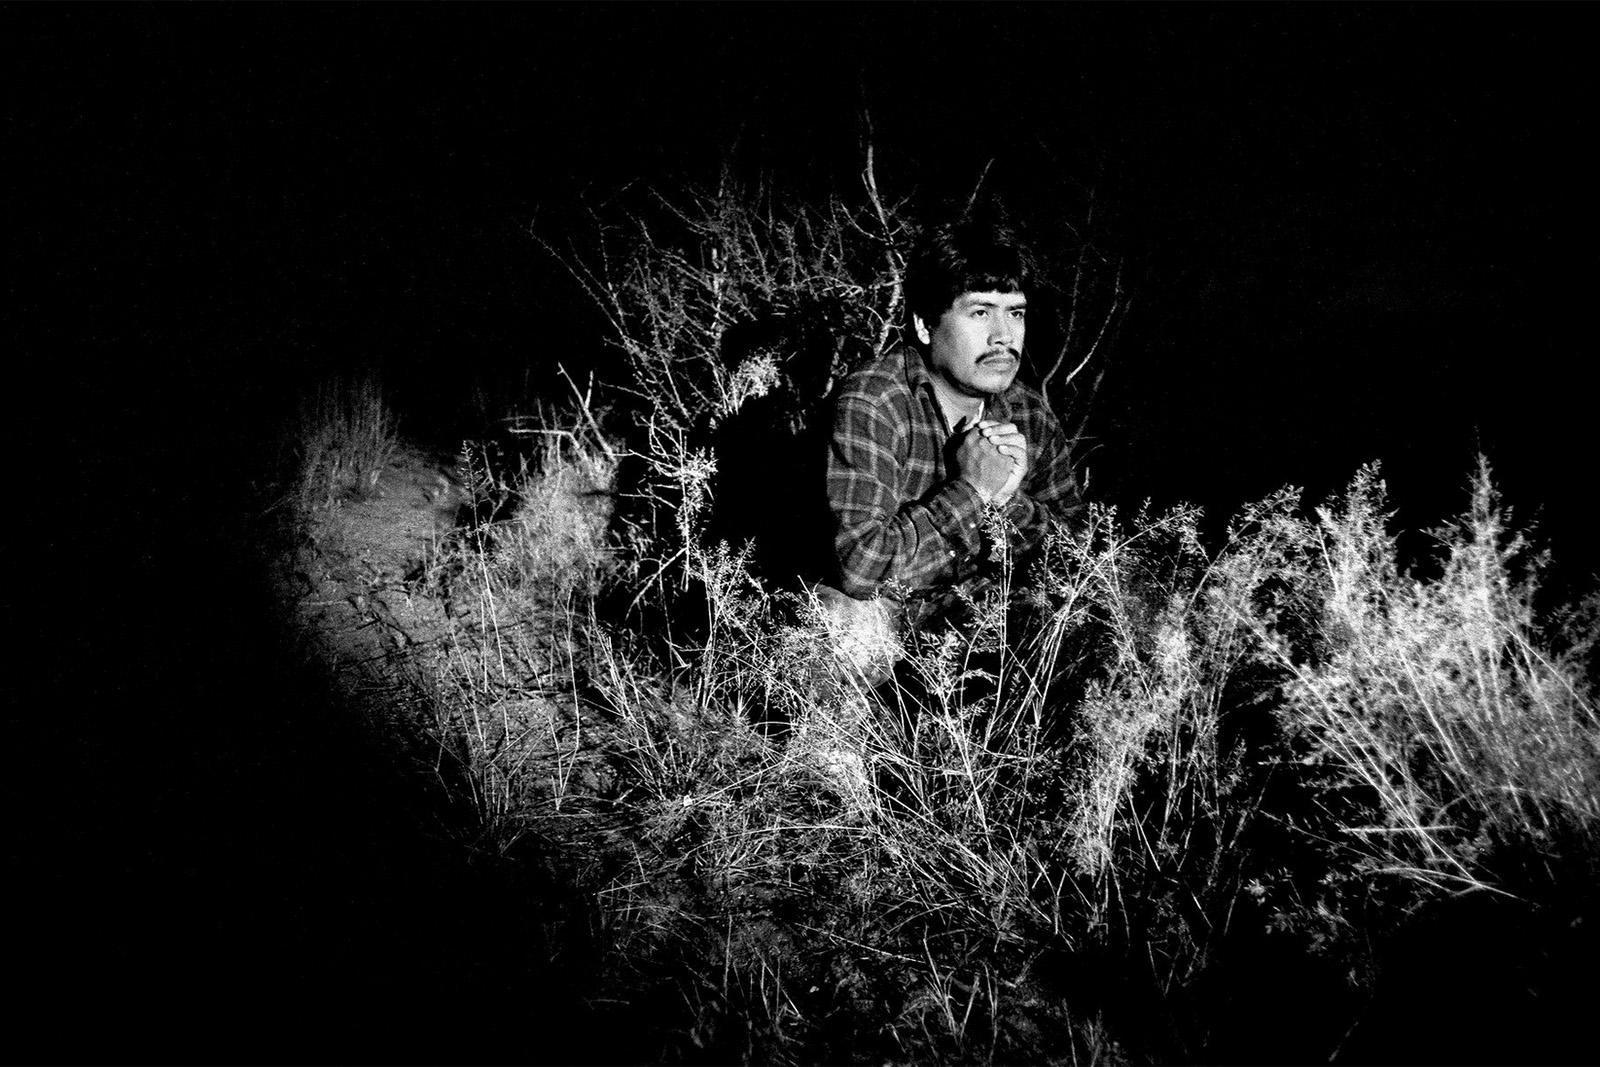 Right-wing vigilantes on US/Mexico border, by Seattle photojournalist Mike Kane editorial photographer